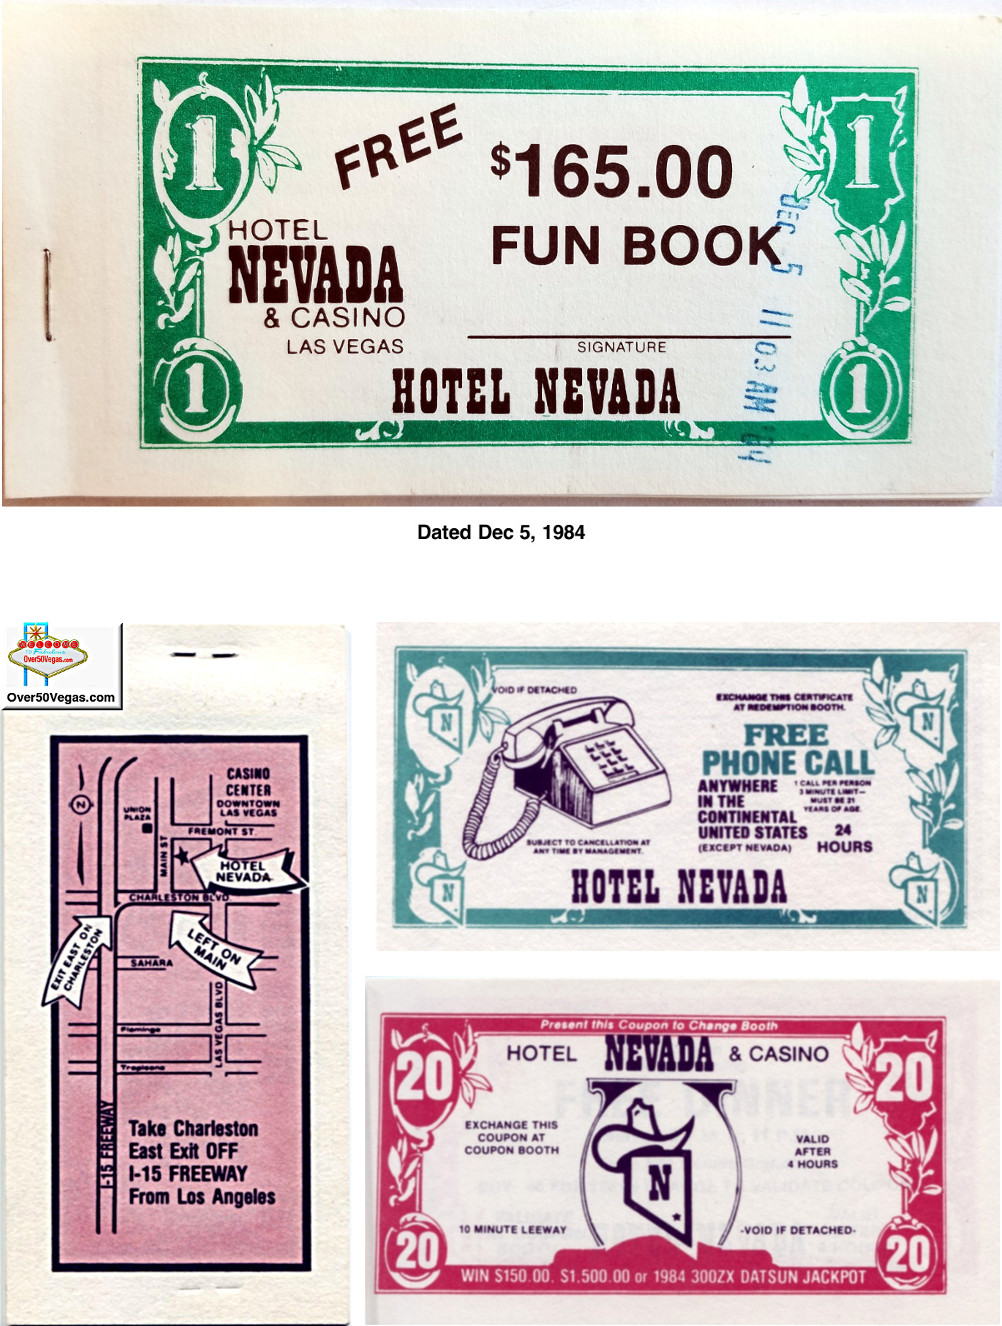 Hotel Nevada & Casino Fun Book